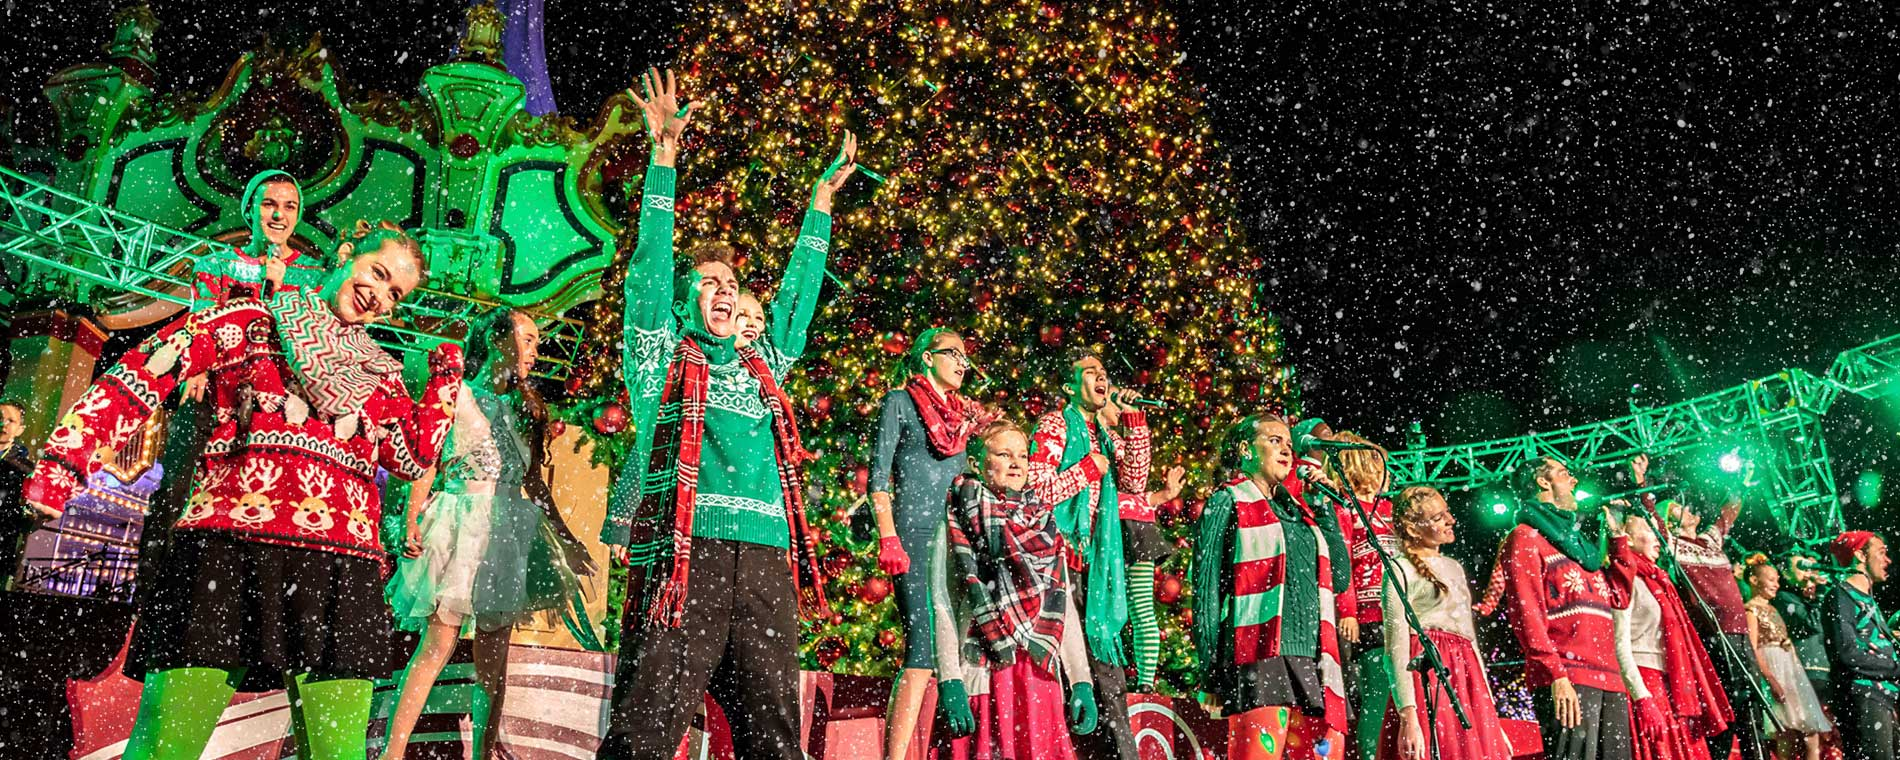 Live Performance at California's Great America's WinterFest Holiday Event